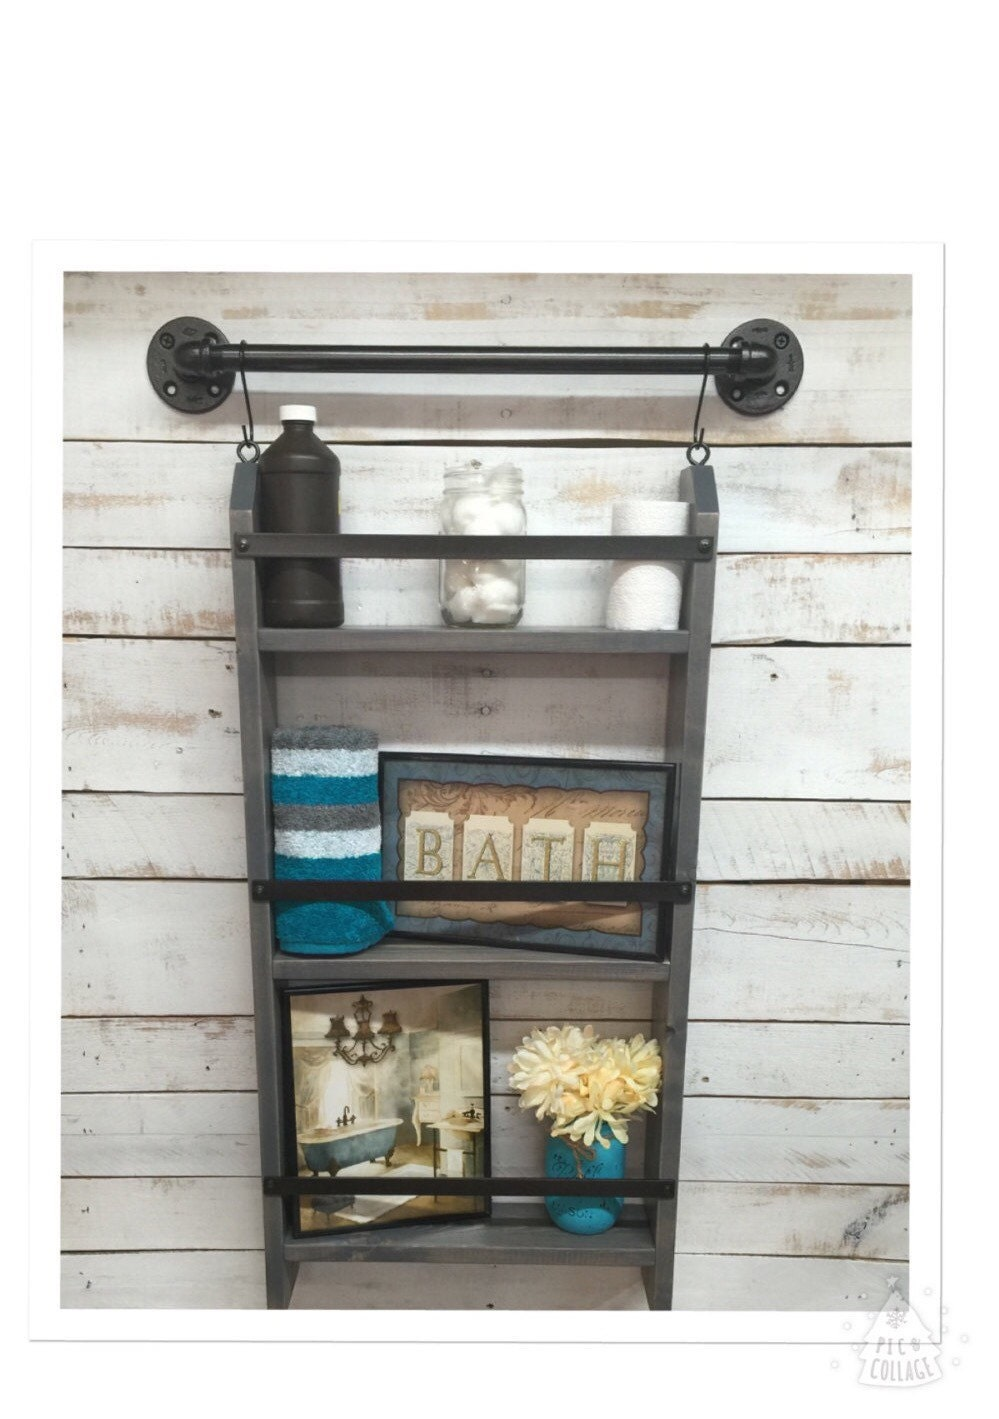 Small Bathroom Ladder Shelf: Bathroom Ladder Shelf Rustic Bathroom Shelf Industrial